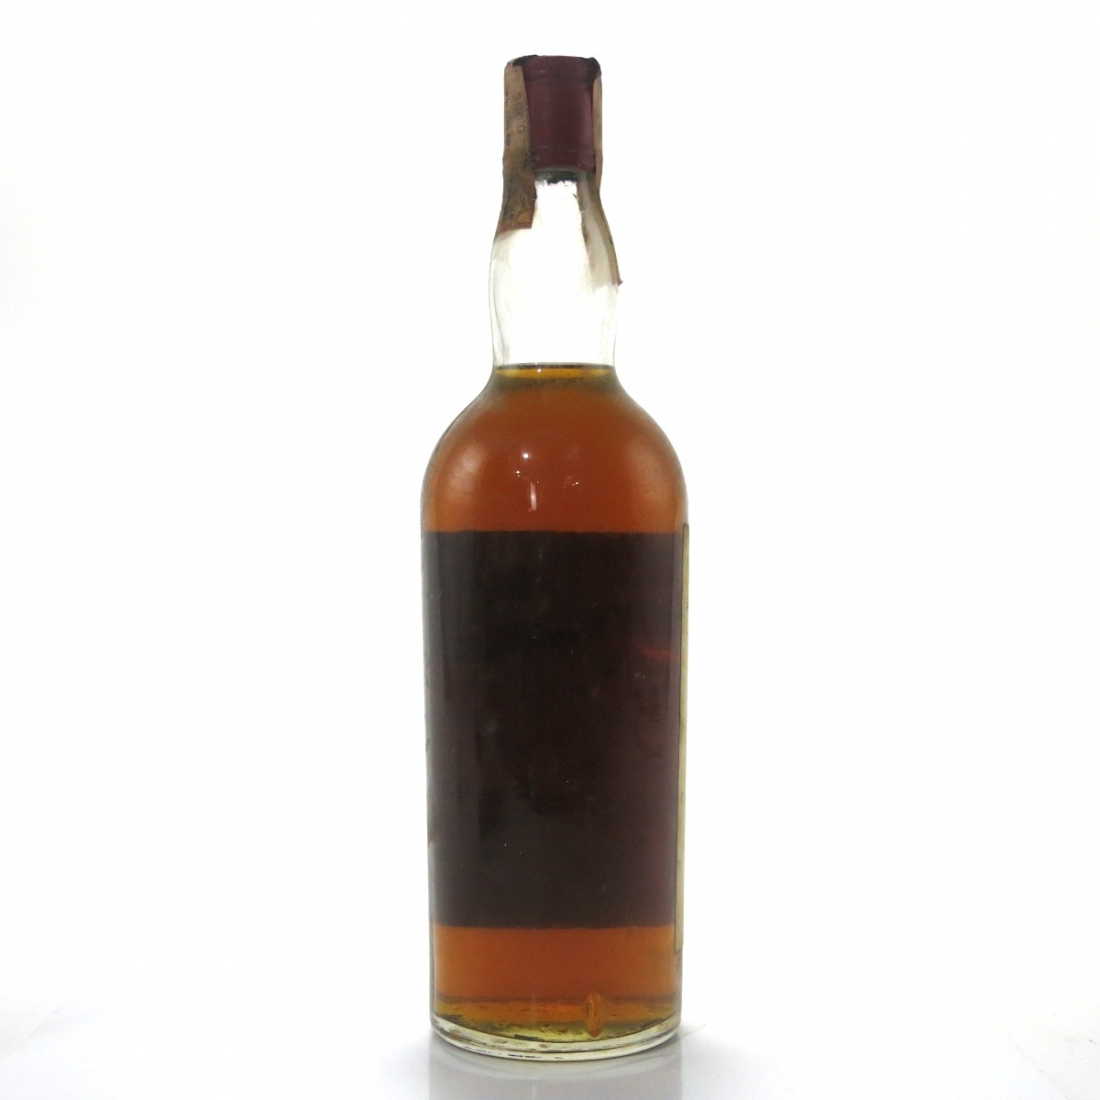 Macallan 33 Year Old Gordon and MacPhail / Pinerolo Import